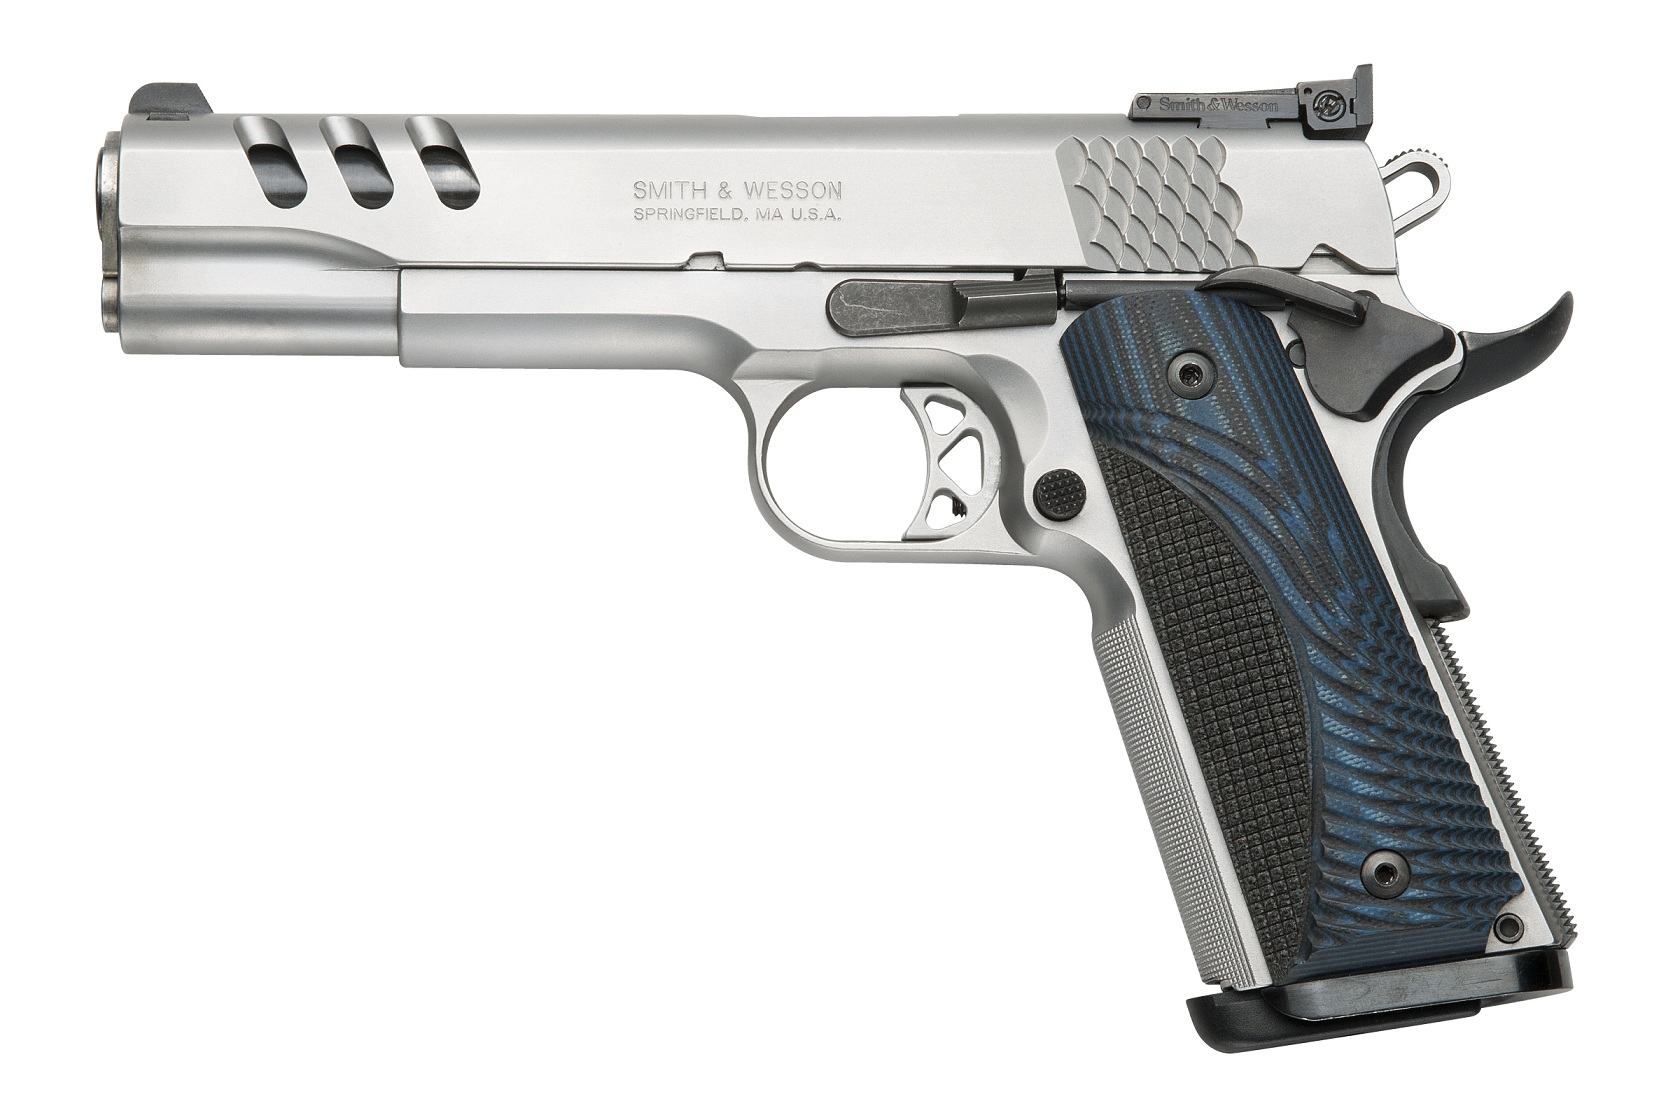 The Performance Center Custom SW1911 .45 ACP pistol, with a Stainless Steel frame &  slide